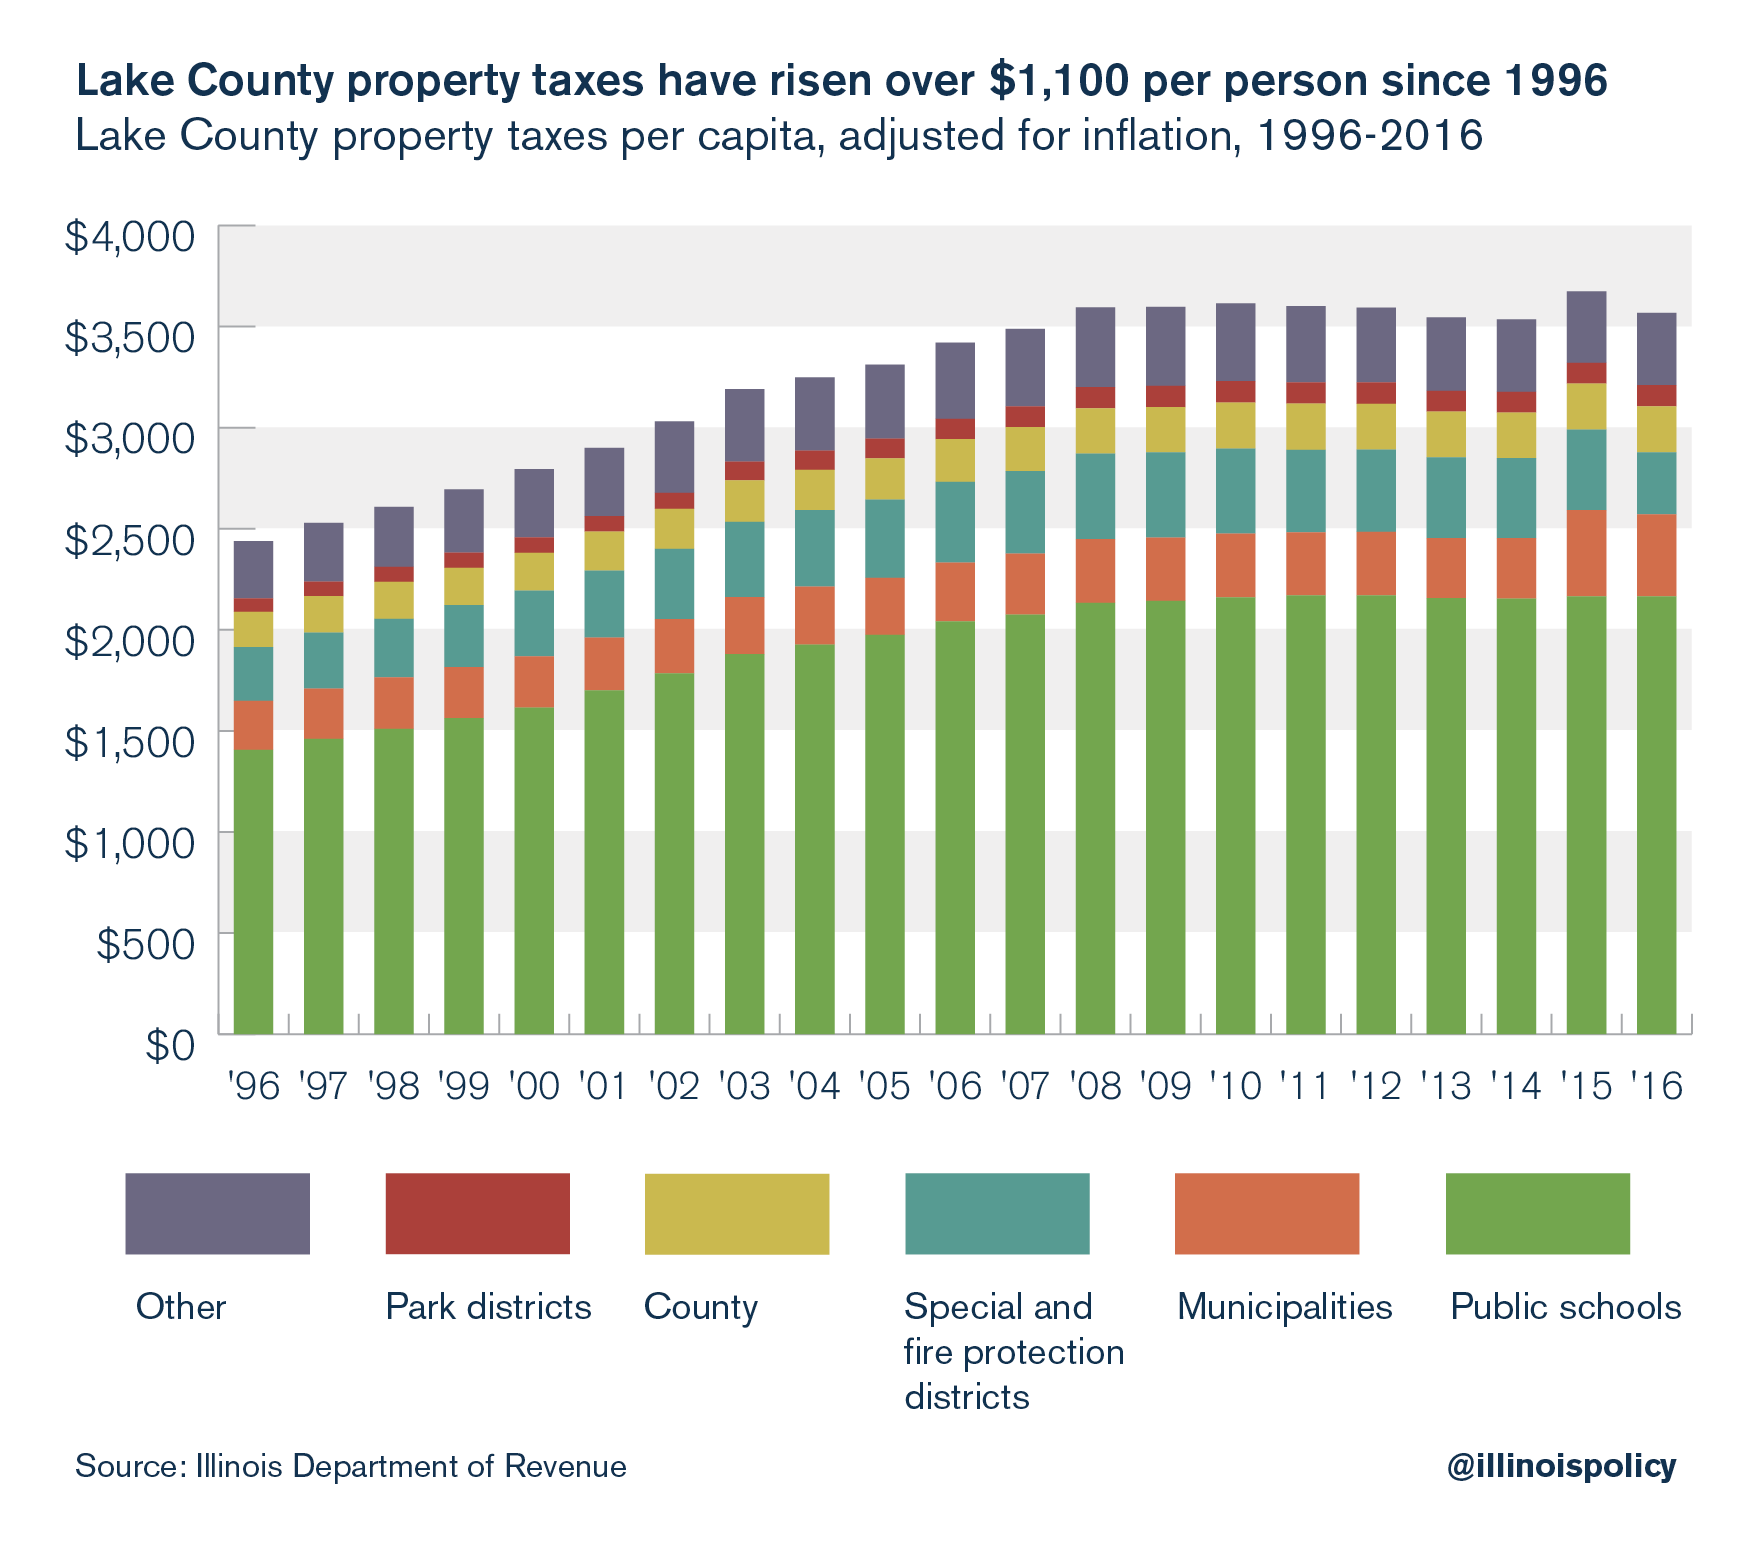 Lake County property taxes have risen over $1,100 per person since 1996